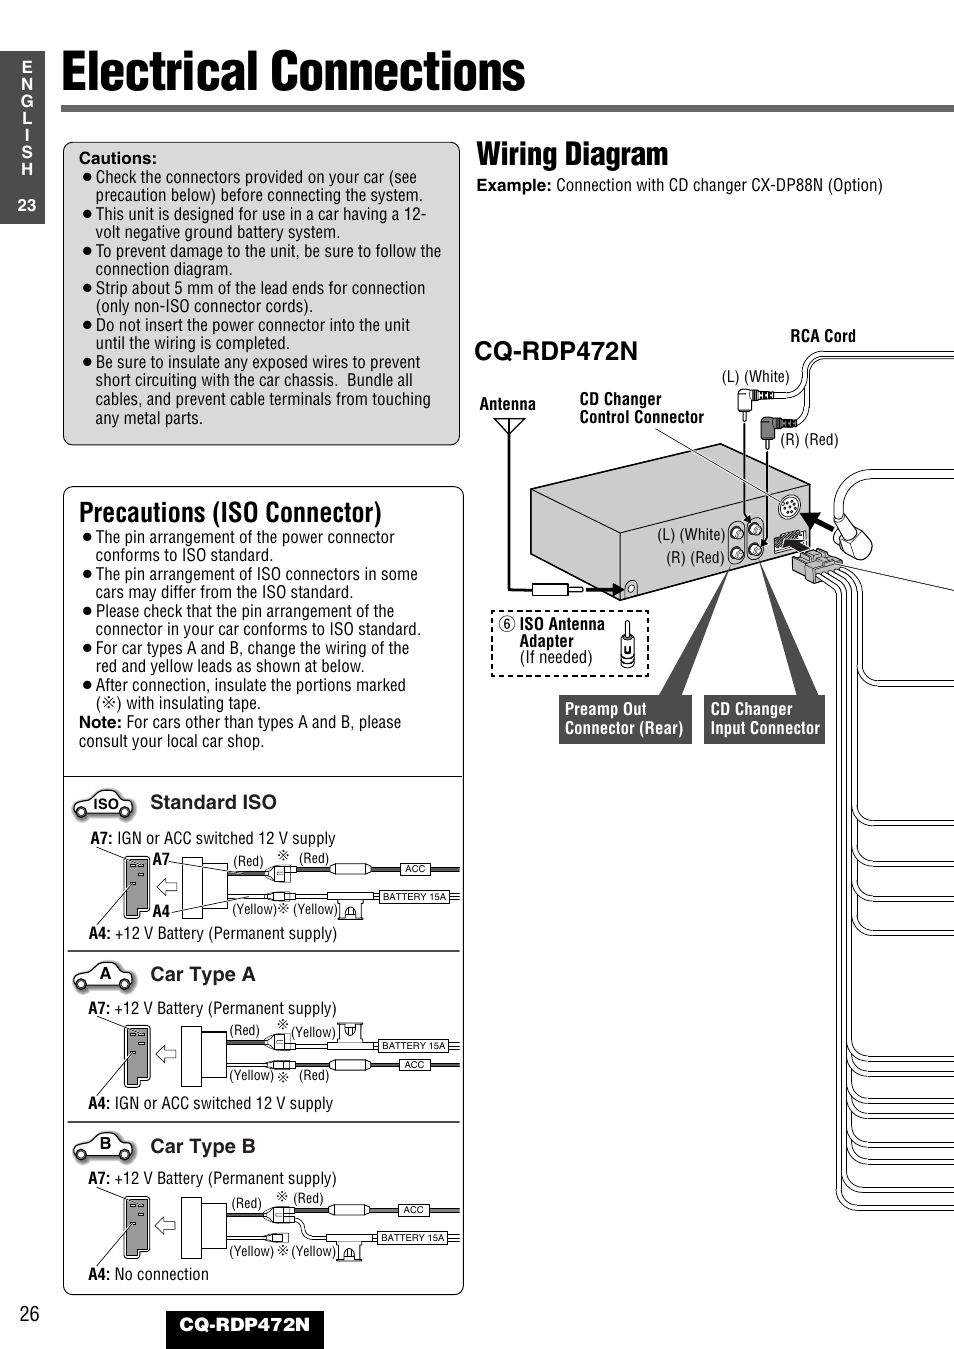 Electrical Connections Wiring Diagram Precautions Iso